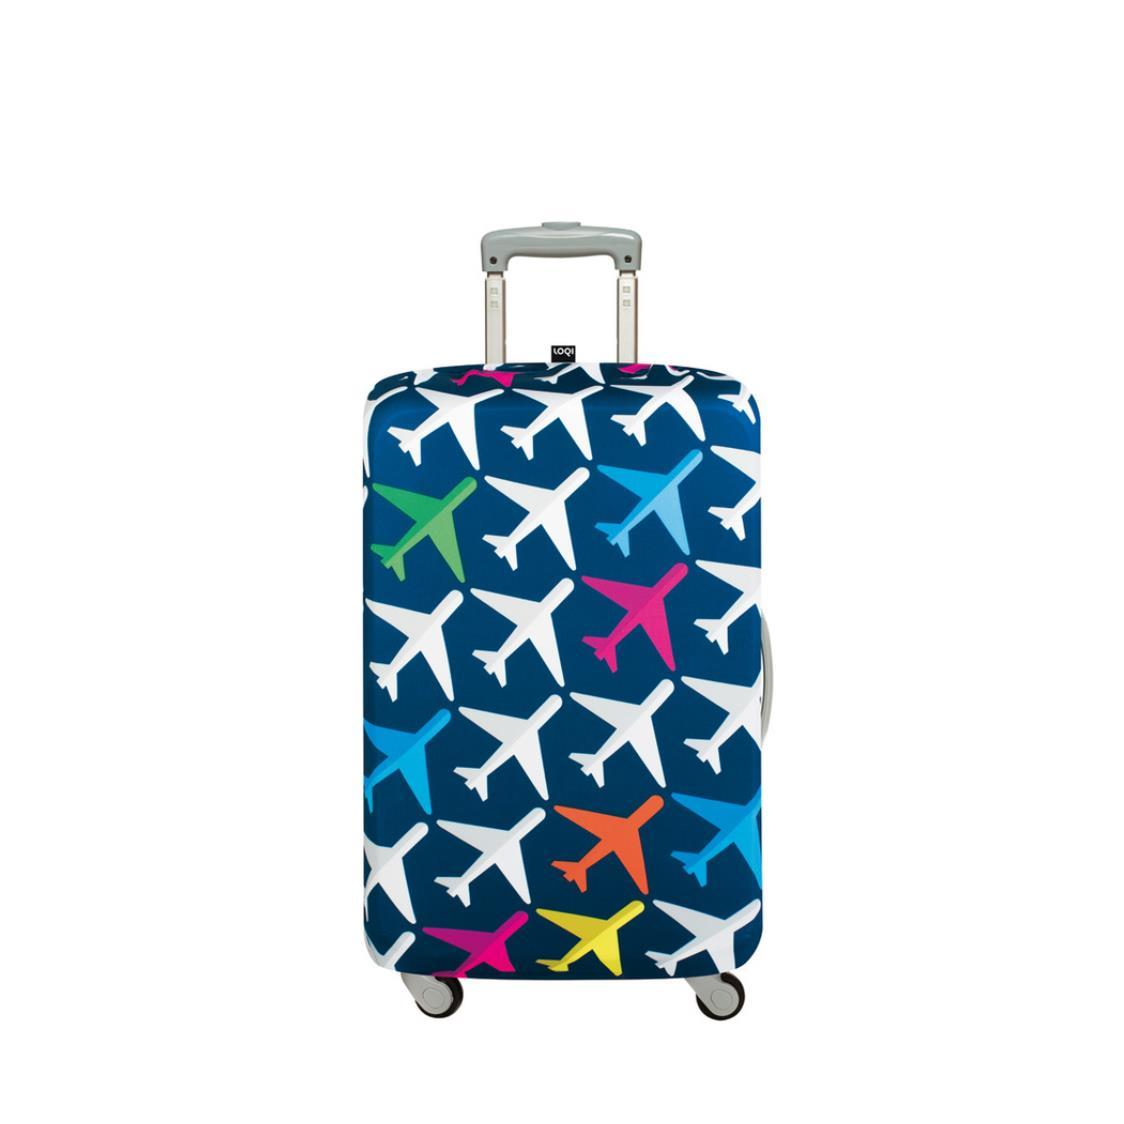 Airport Luggage Cover - Airplane